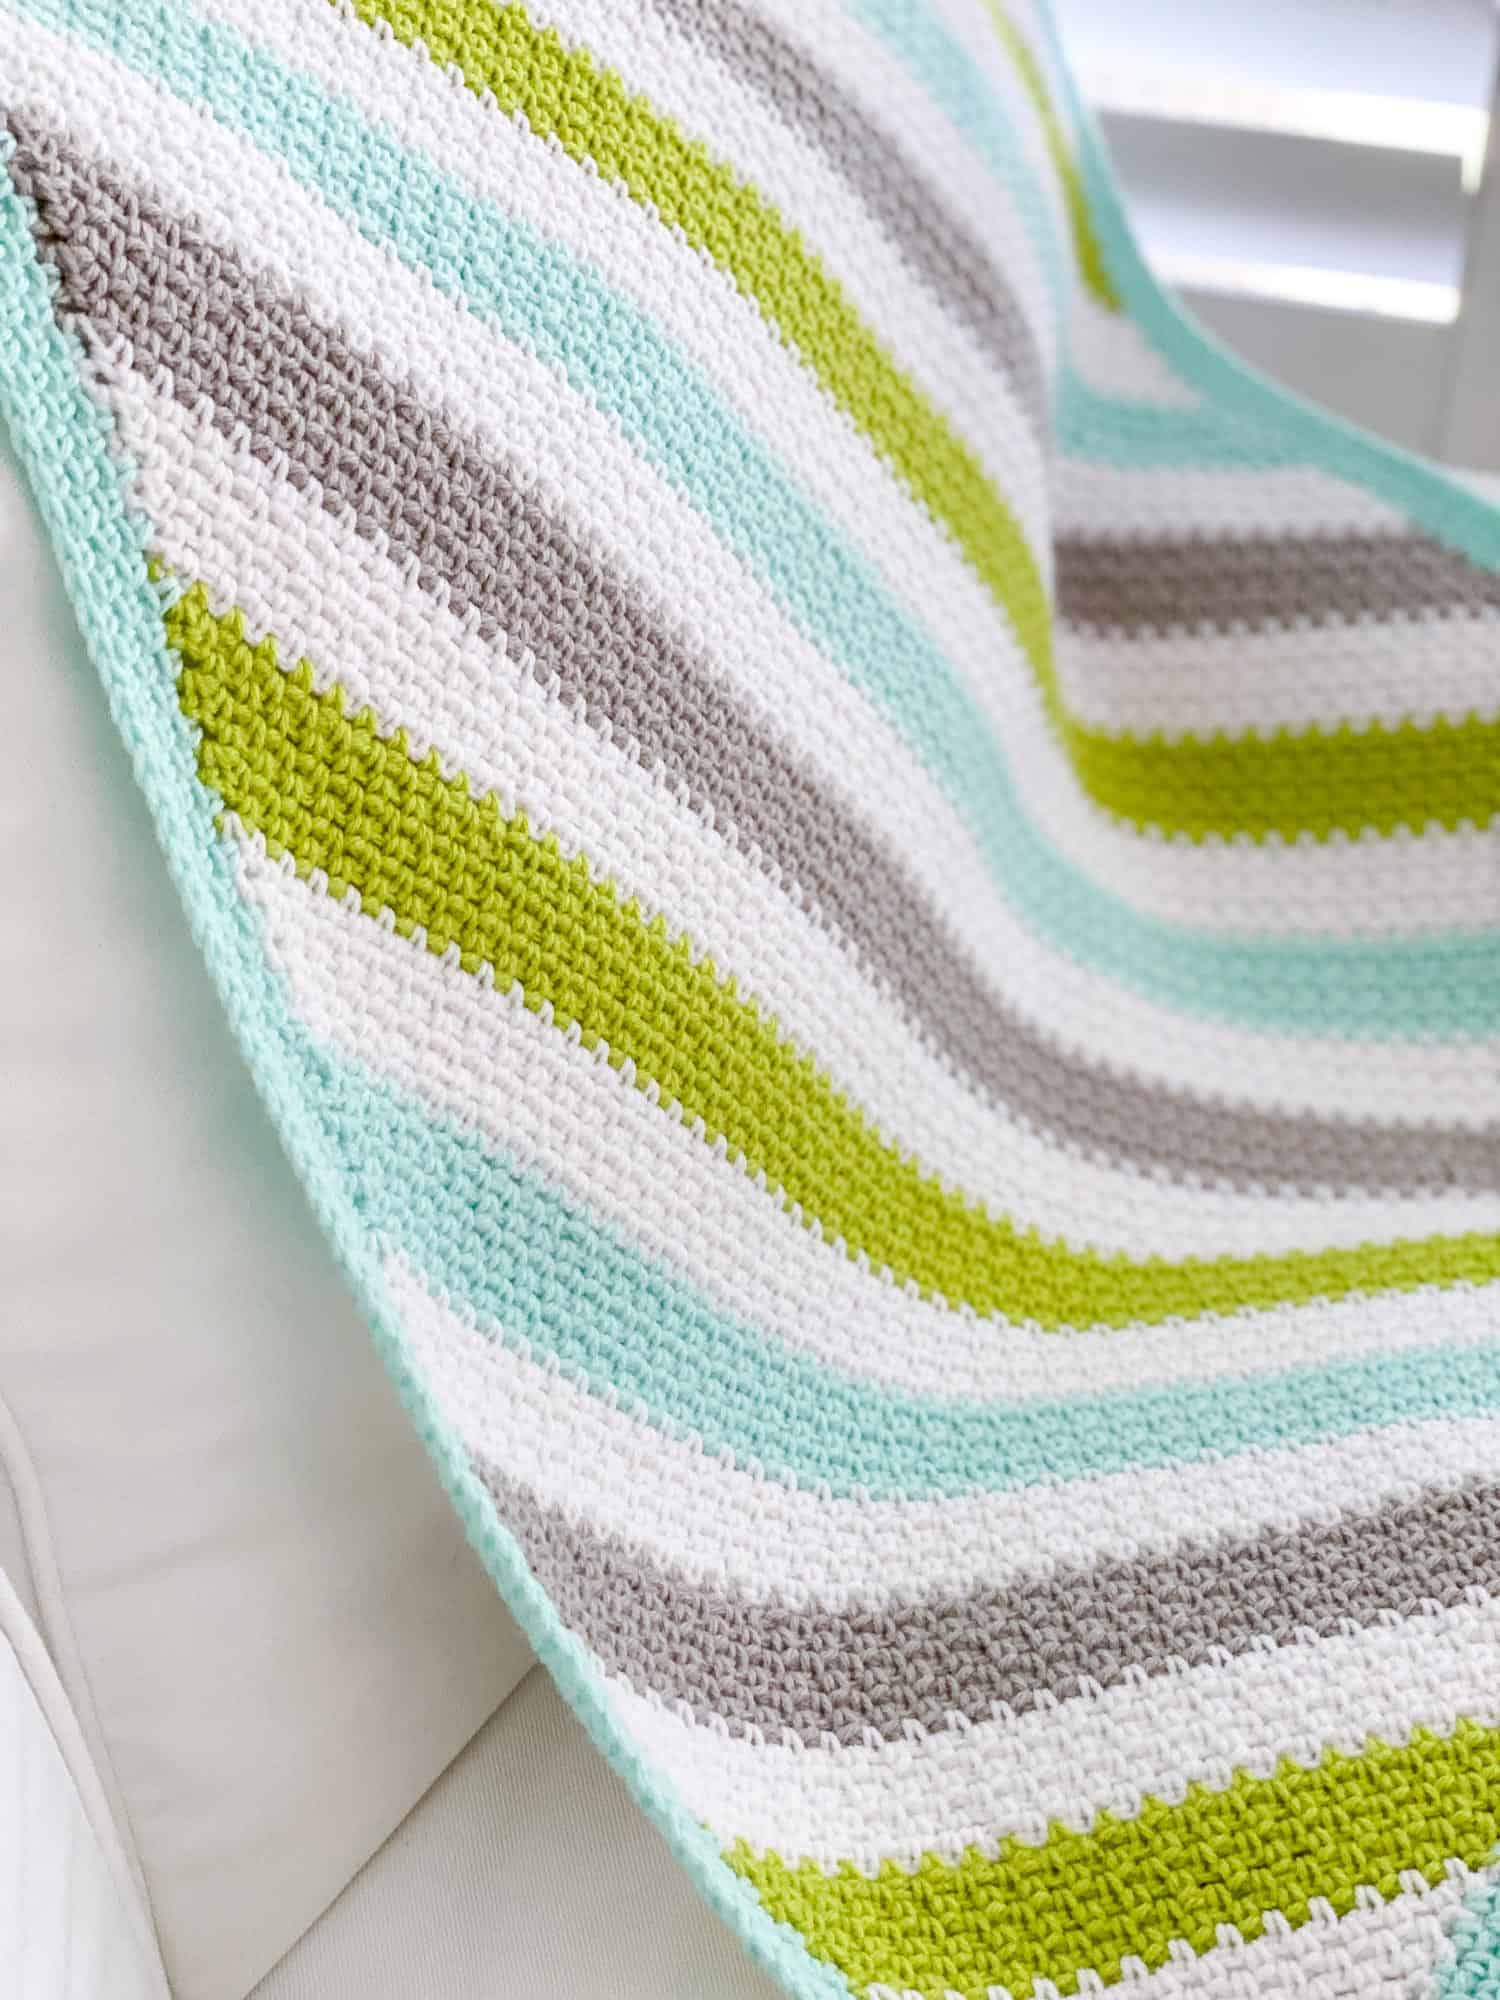 The granite stitch (also known as the moss stitch and the linen stitch) is a beautiful crochet pattern with a fantastic drape and texture.